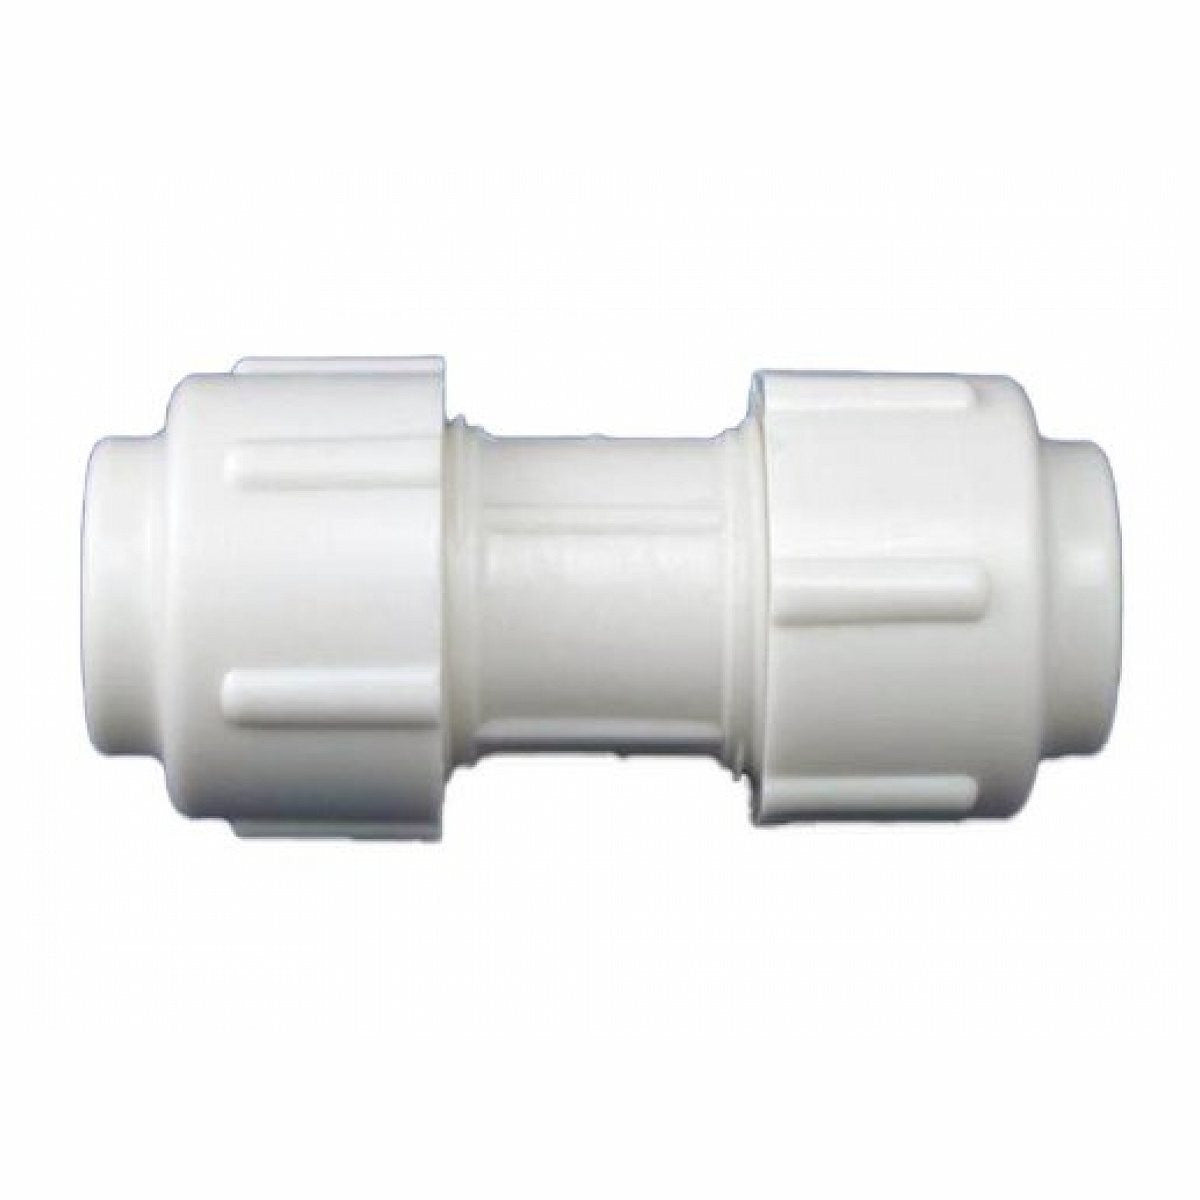 Transition Fitting By Flair It Fittings M Amp L Mobile Home